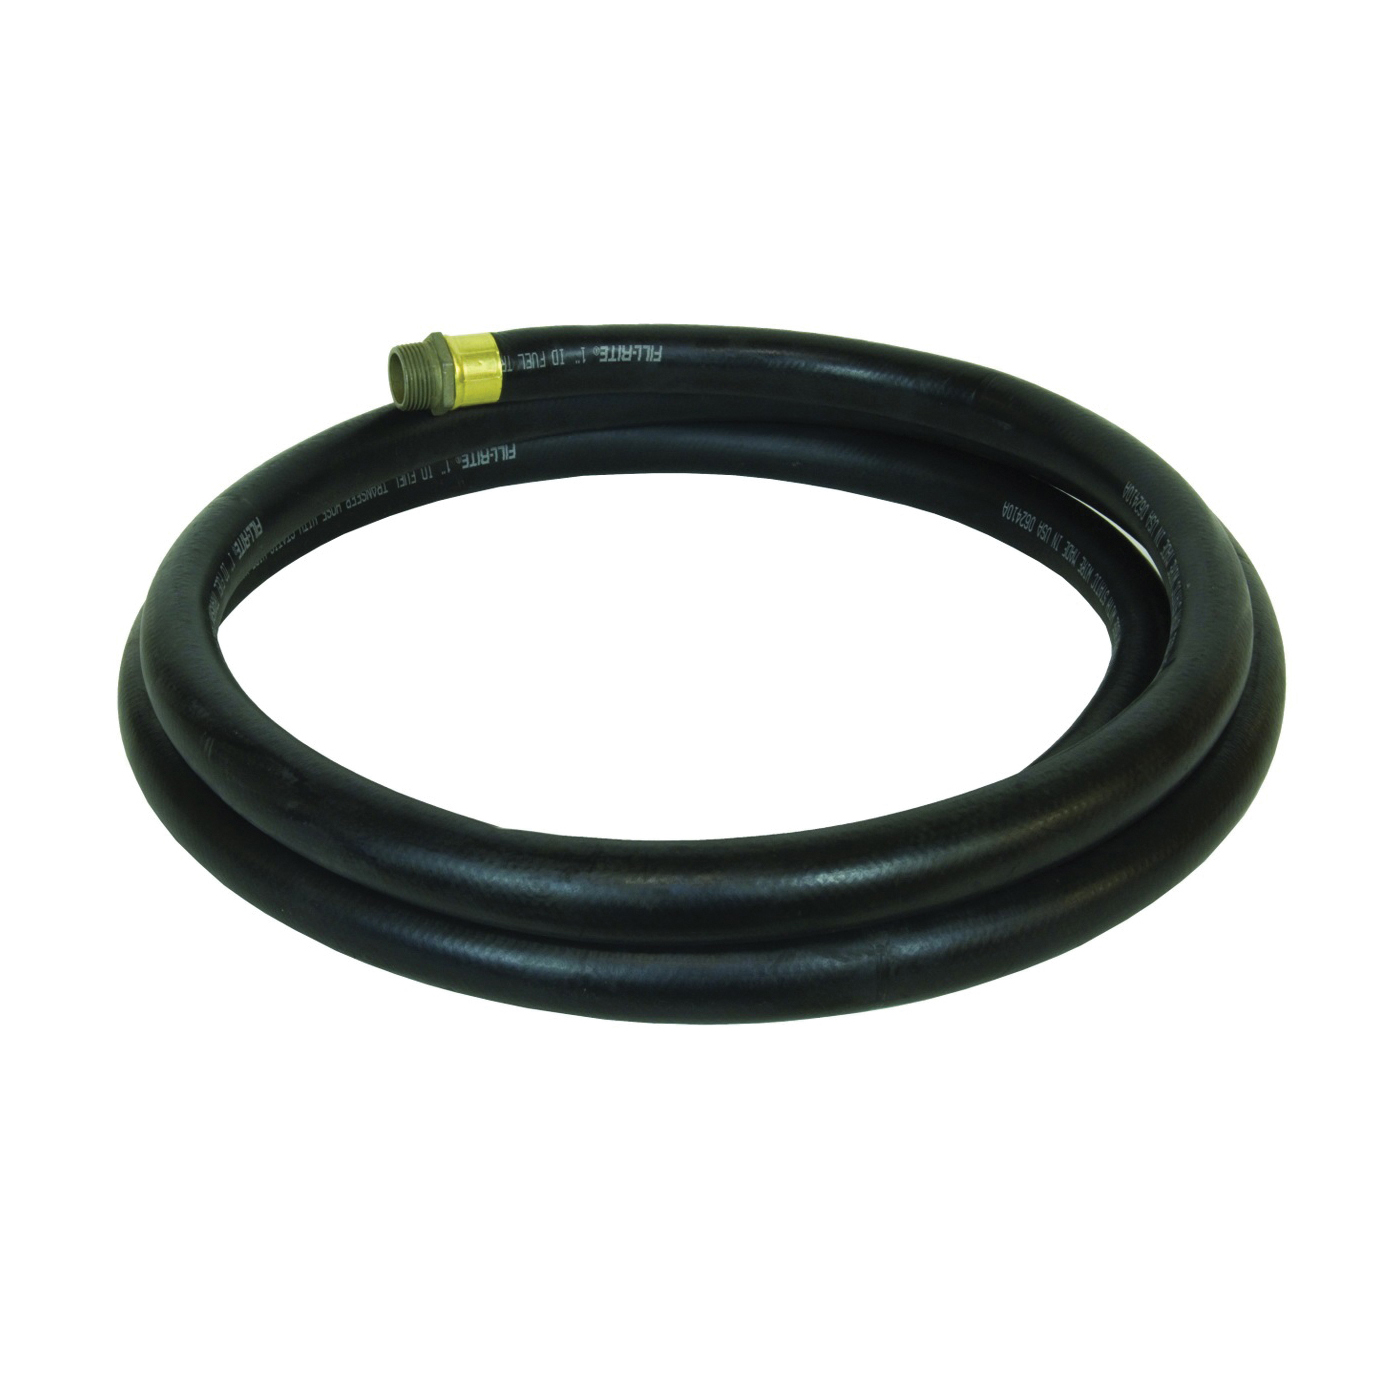 Picture of Fill-Rite FRH10014 Fuel Transfer Hose, 14 ft L, Neoprene, Black